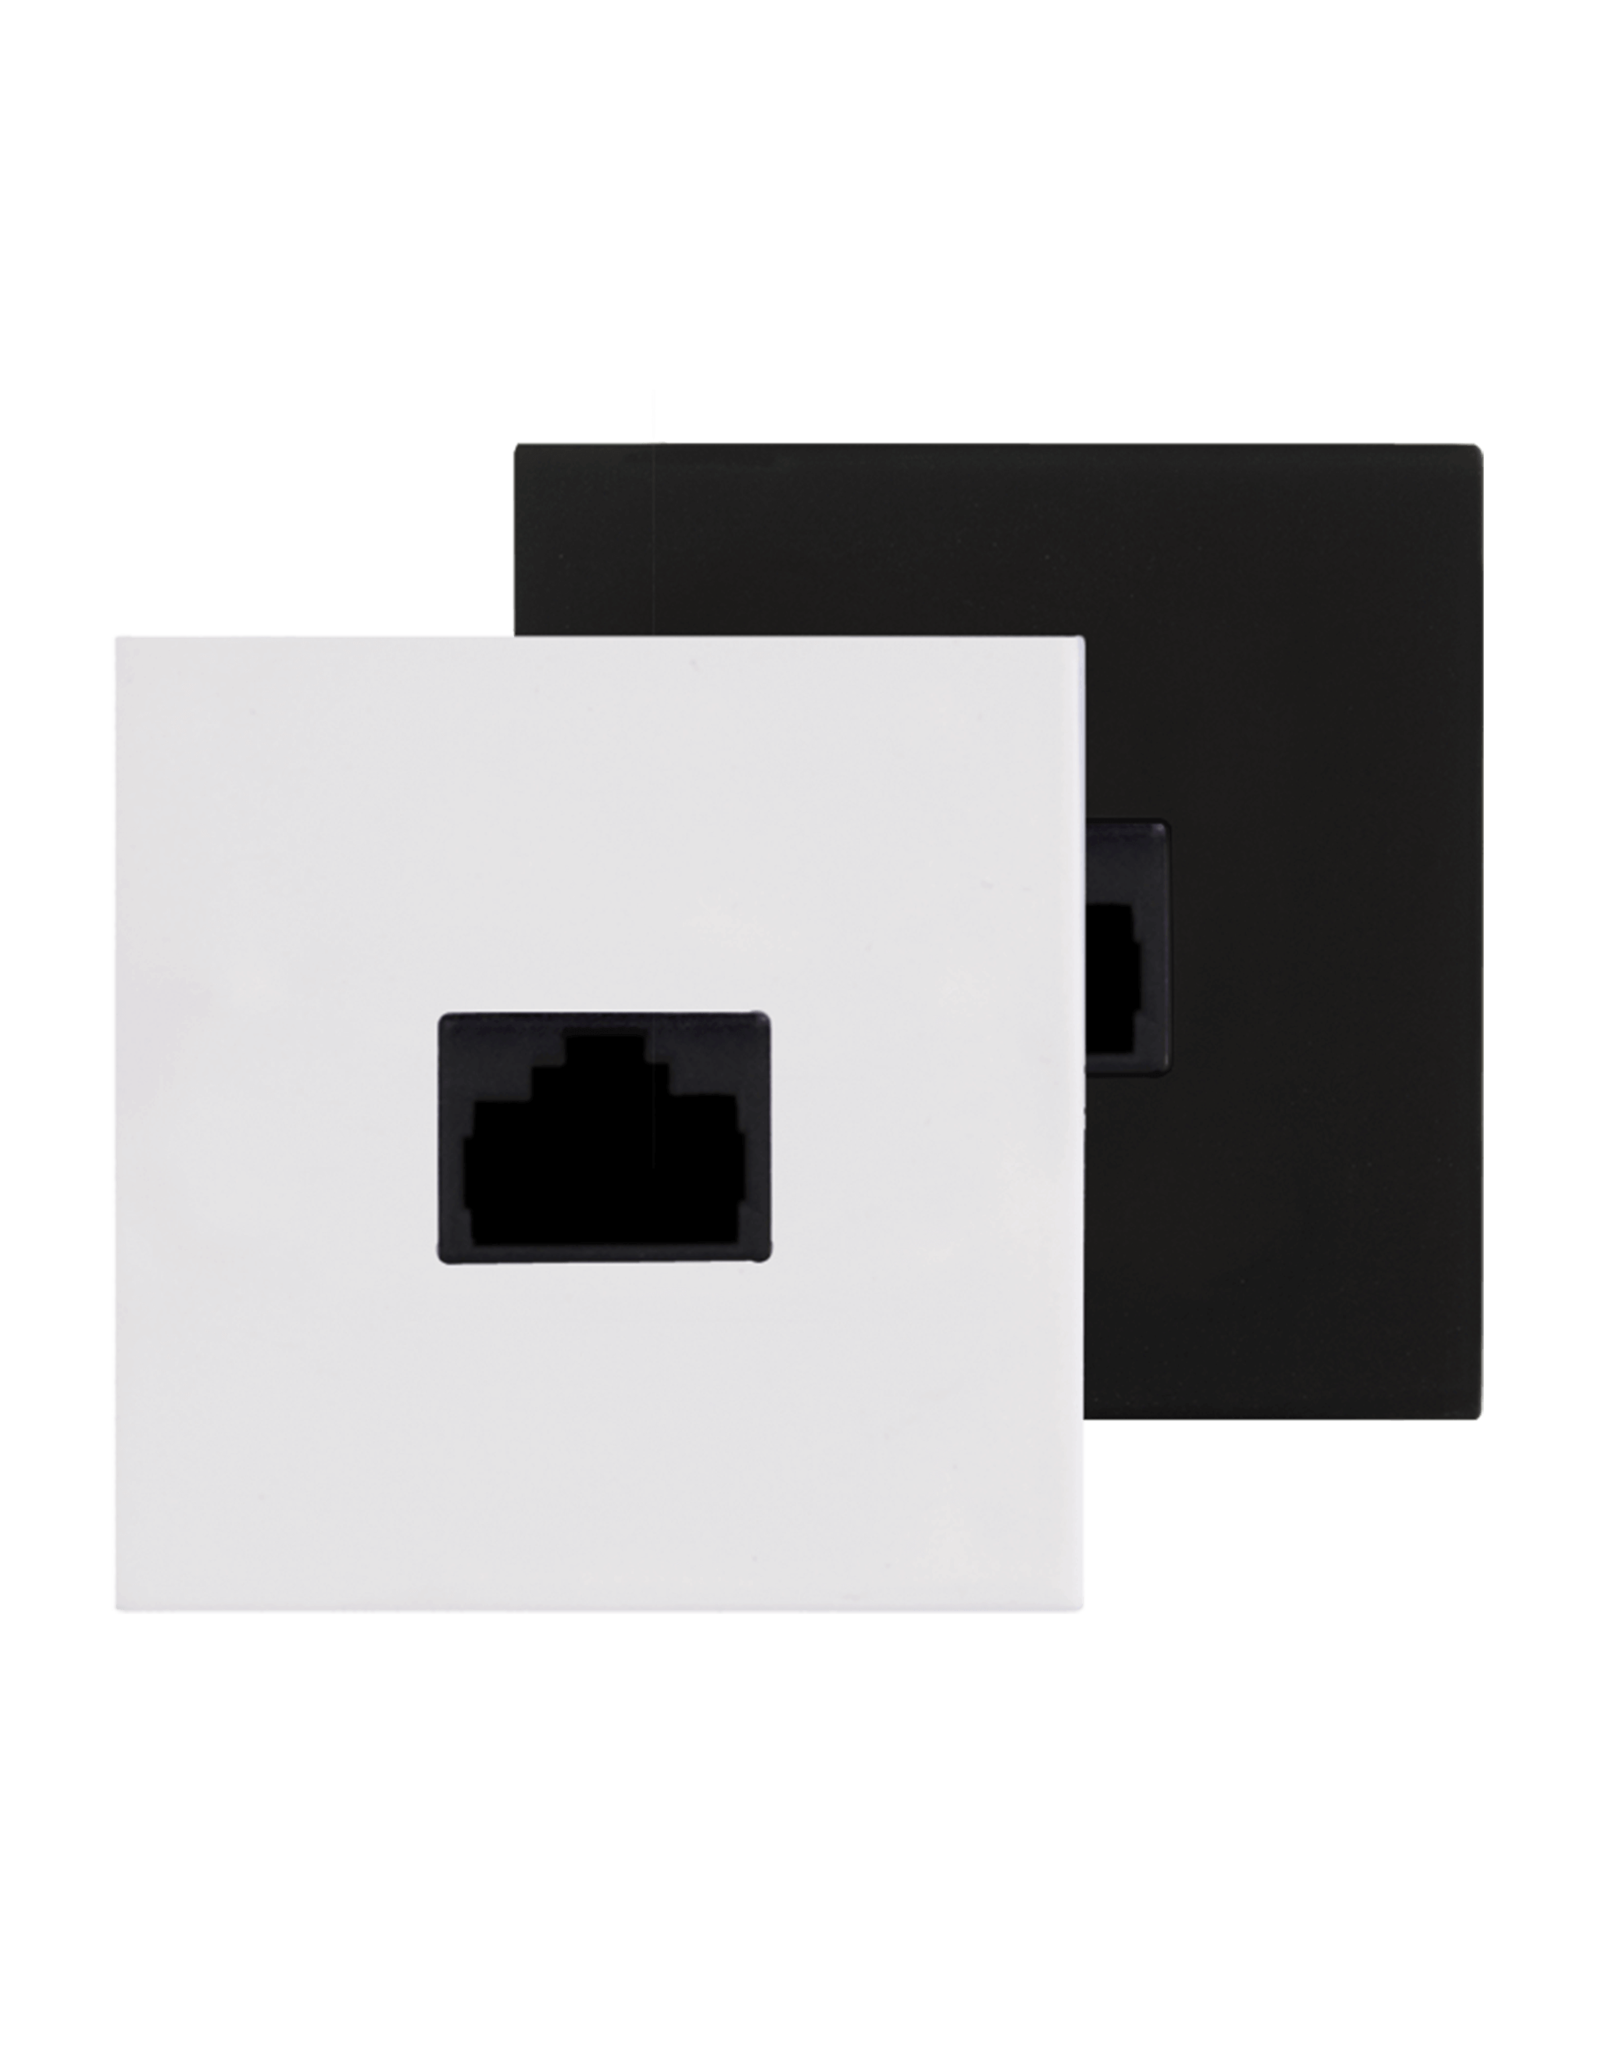 Audac Connection plate - rj45 + repeater - bticino Black version